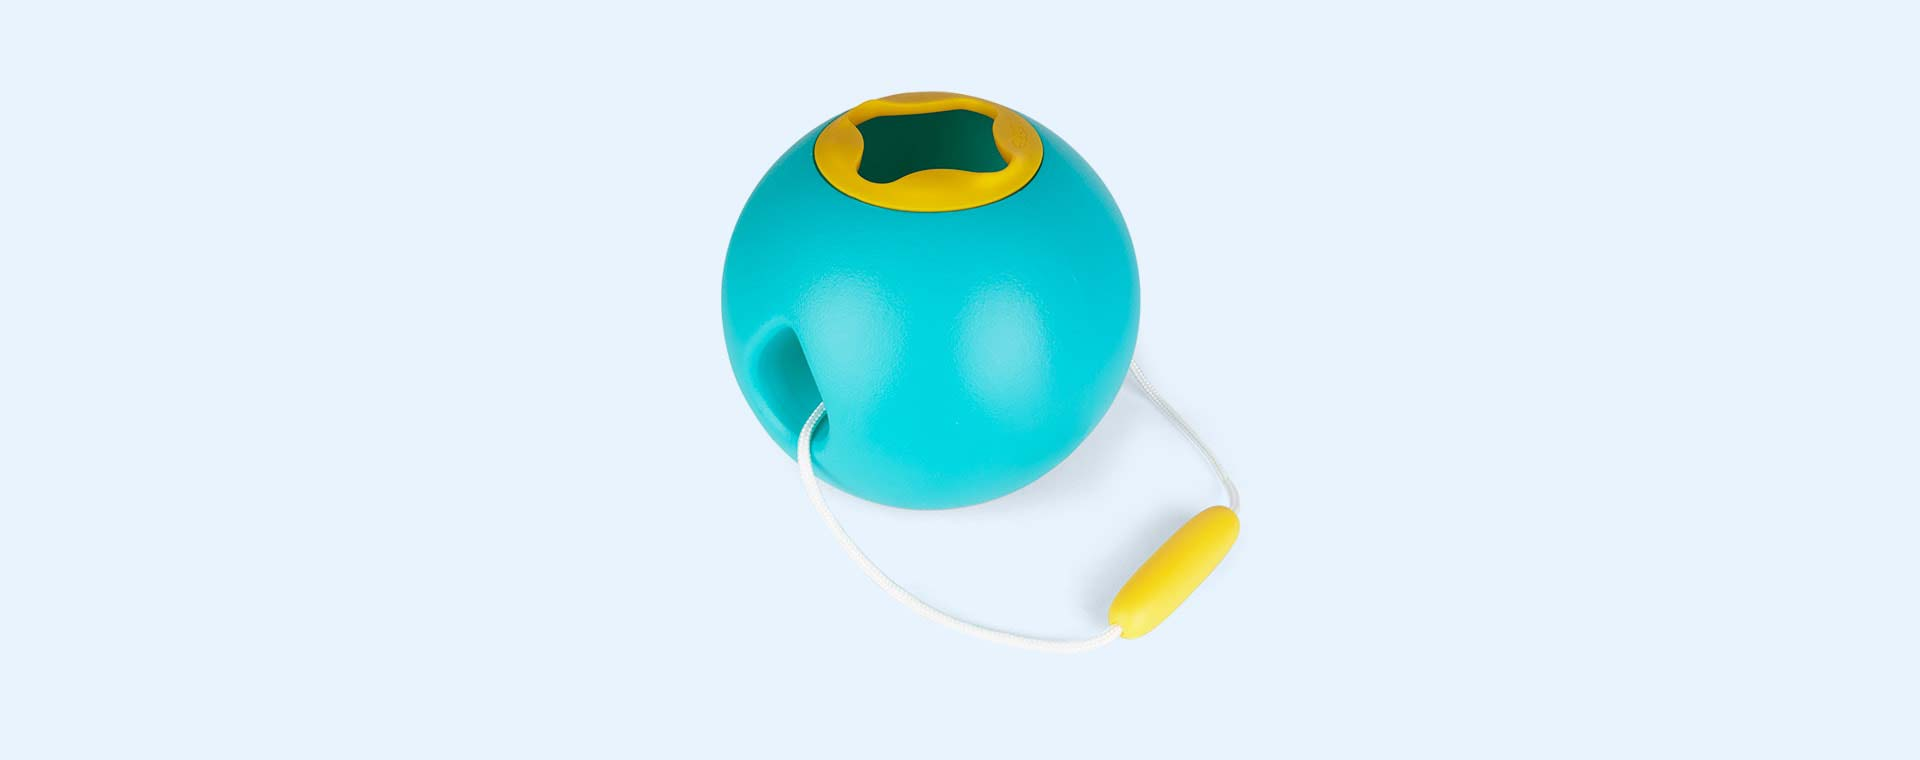 Lagoon Green Quut Ballo Bucket